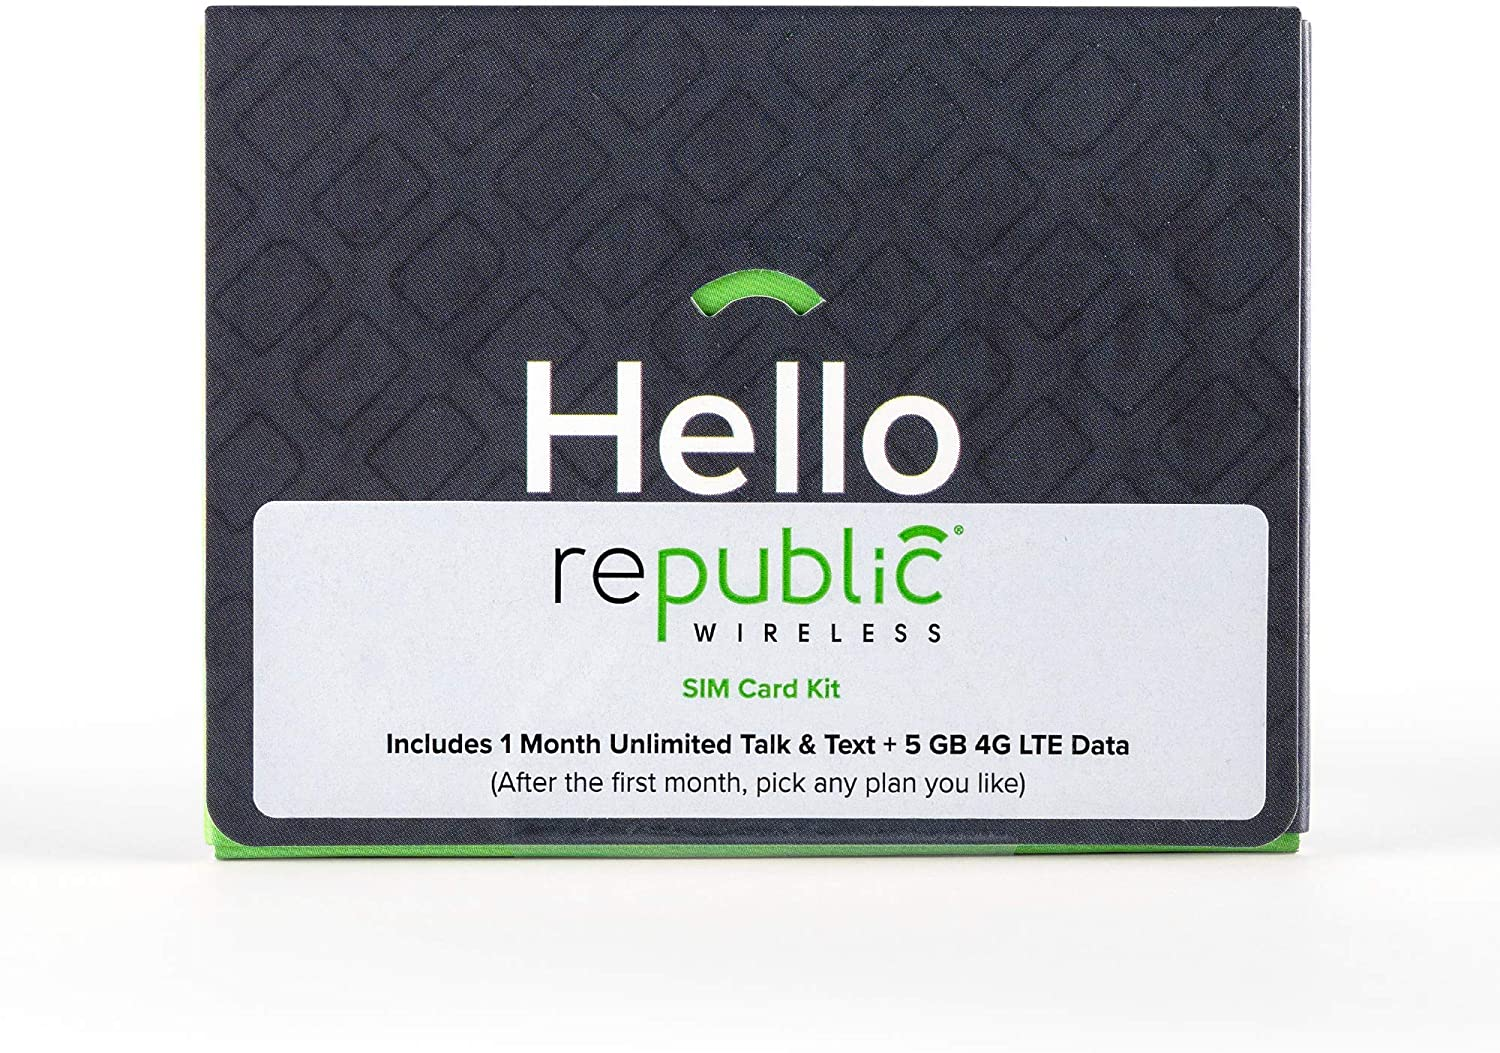 No Contract Required $40 Service Value Republic Wireless Preloaded 3-in-1 SIM Card Kit with 1 Month of Service Including 5GB of 4G LTE Data Plus Unlimited Talk and Text